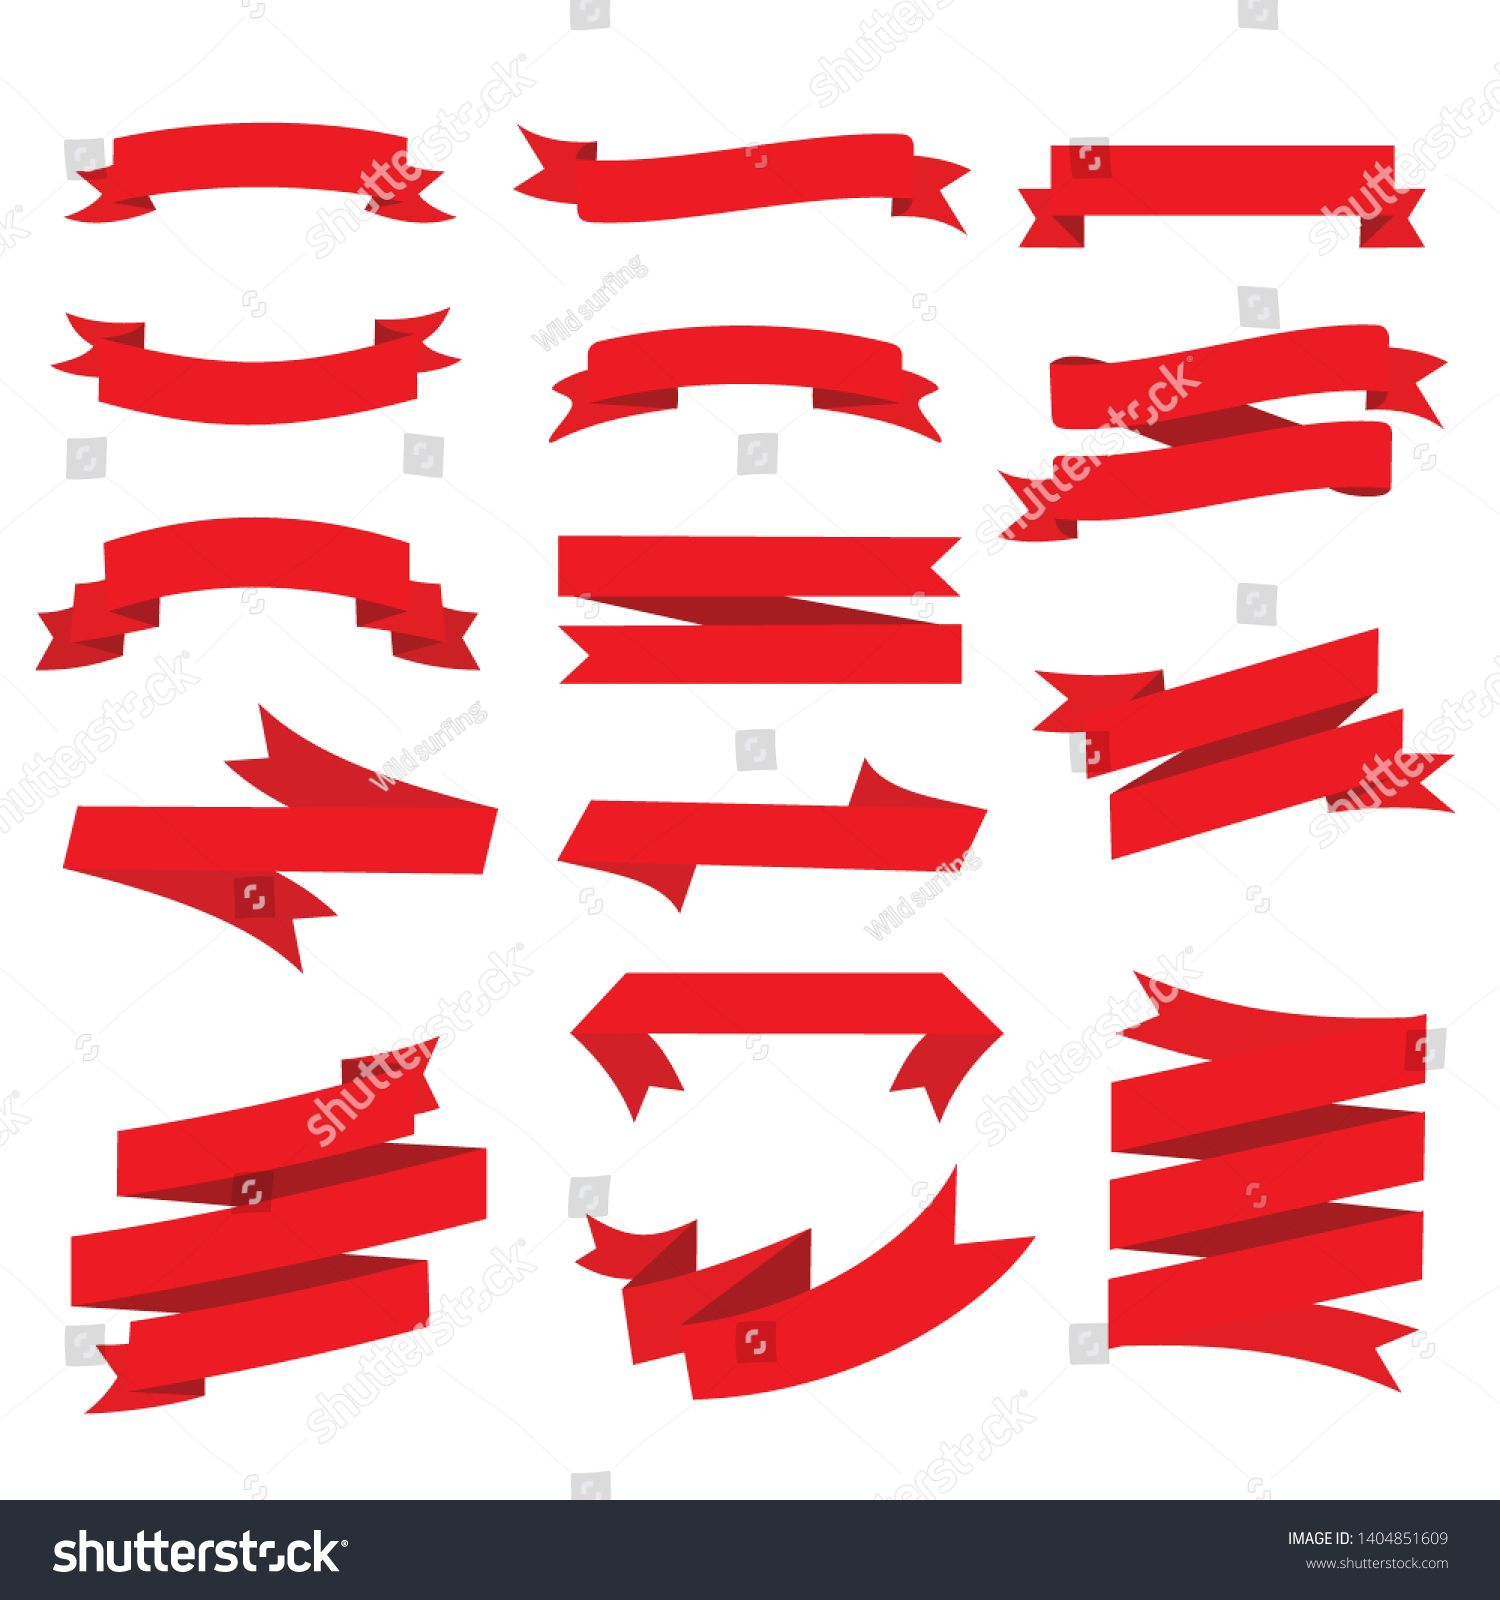 D Lassic Ribbons Flat Vector Ribbons Banners Flat Isolated On White Background Illustration Set Of Red Tape Spons Ribbon Banner Graphic Illustration Banner